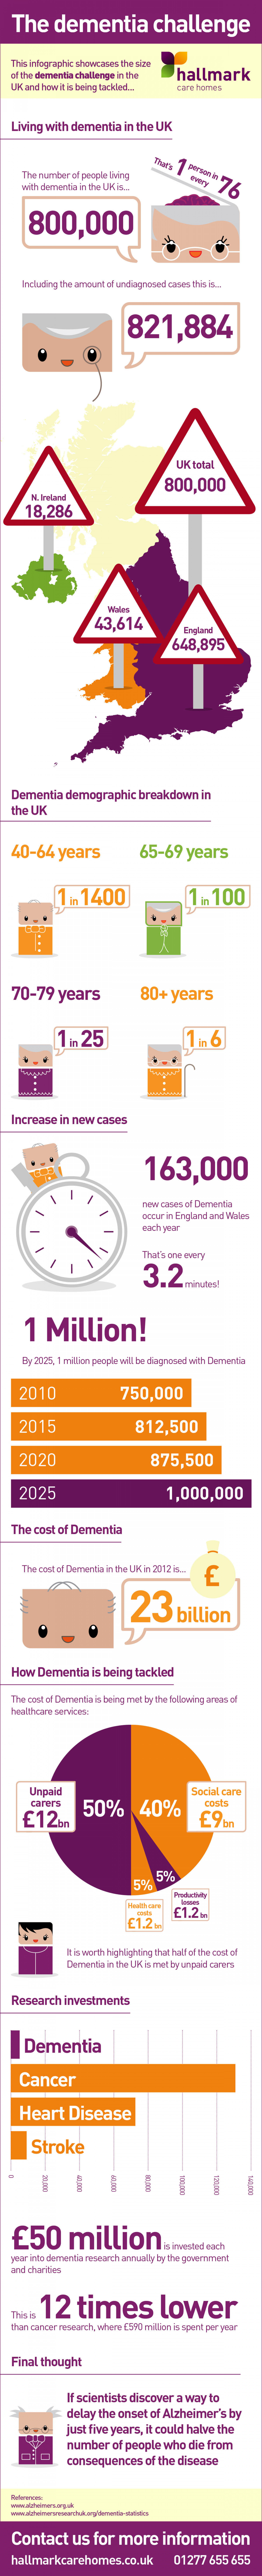 The Dementia Challenge Infographic